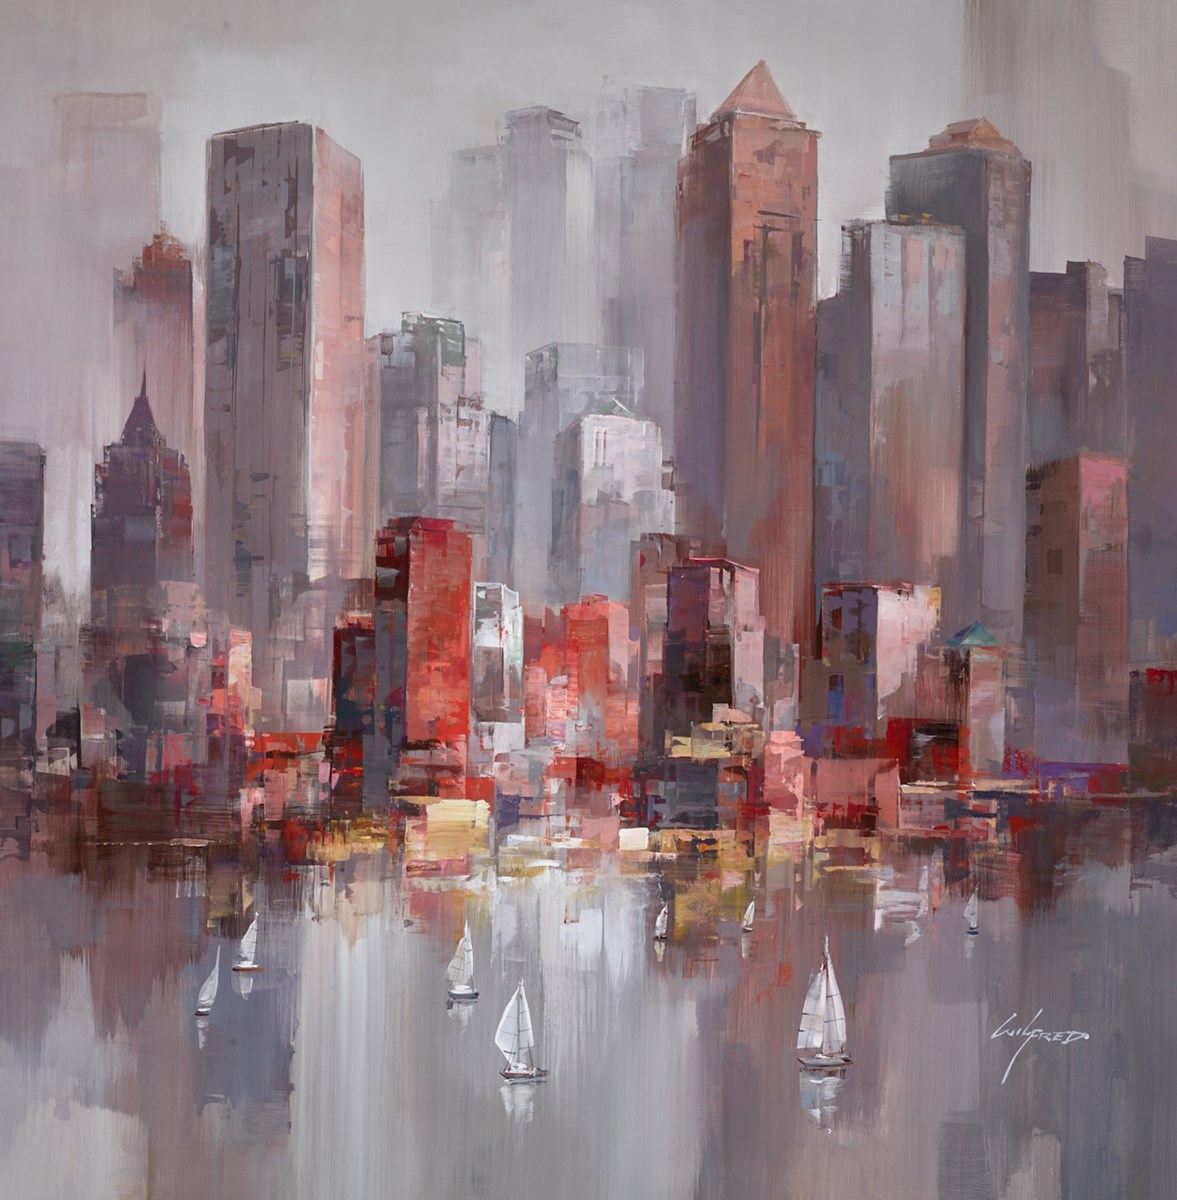 Sailing to the City I by wilfred -  sized 38x38 inches. Available from Whitewall Galleries